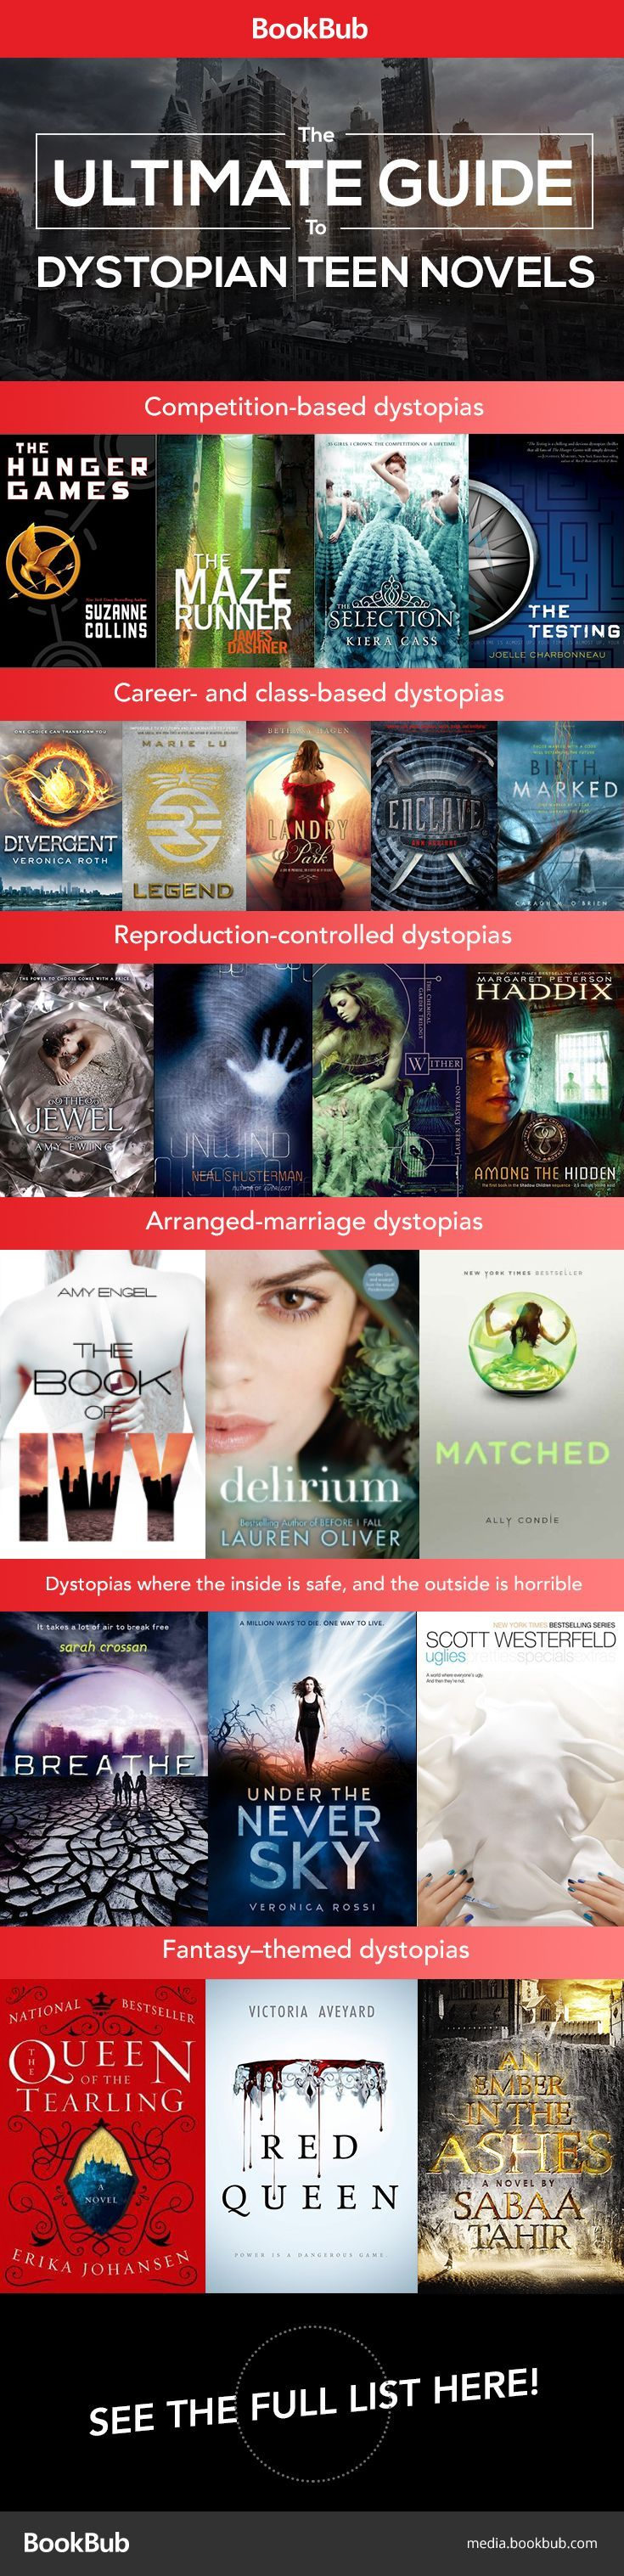 Dystopian Literature has been a fast growing genre among young adult readers. I think that this is because young adults like the stories of people around or close to their age rising up against injustice and fighting for their beliefs. We are living in a time when there is so much injustice in the world so it's only natural to want to read about the good guys winning.